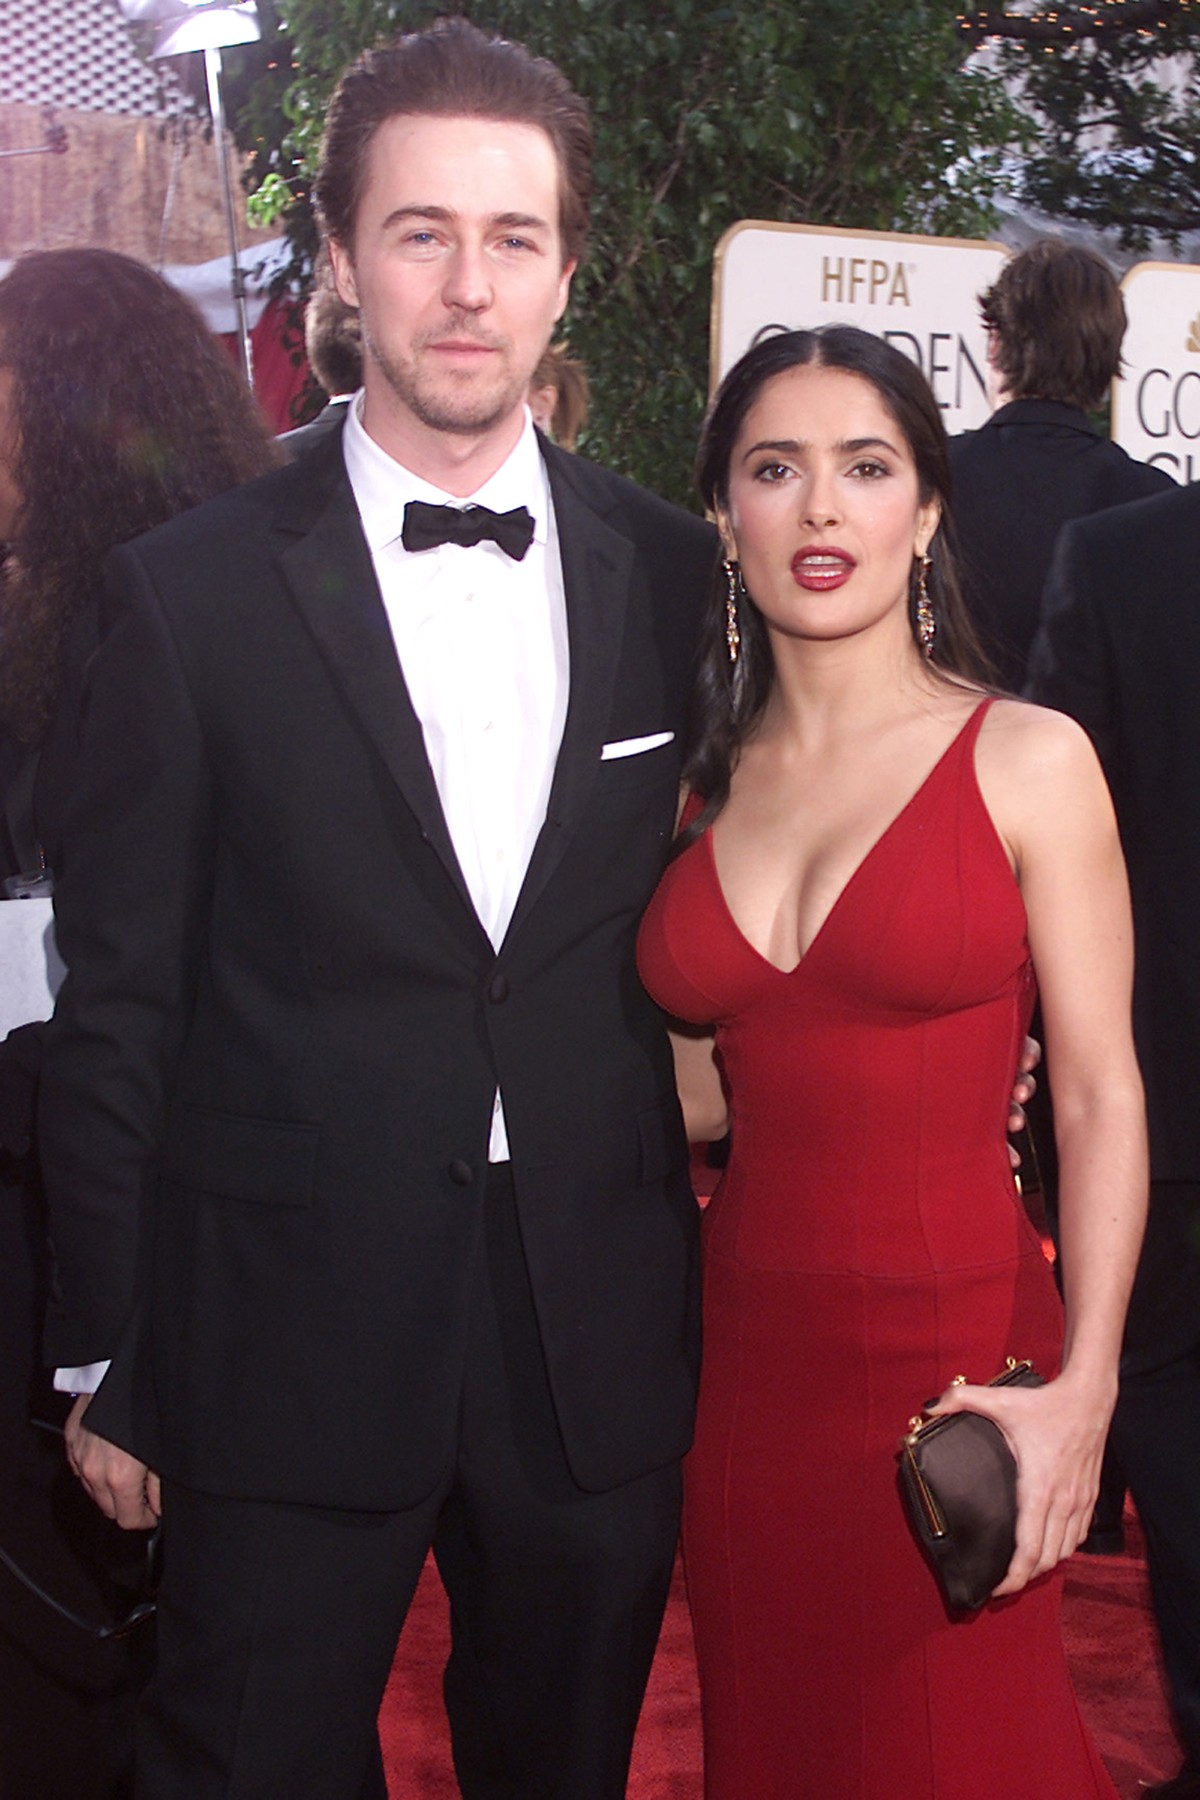 Ed Norton and Salma Hayek (wearing Narciso Rodriguez) at Golden Globe Awards, LA, CA 1/19/2003, NBC/Courtesy of the Everett, Image: 98305779, License: Rights-managed, Restrictions: For usage credit please use; Courtesy Everett Collection, Model Release: no, Credit line: Courtesy Everett Collection / Everett / Profimedia